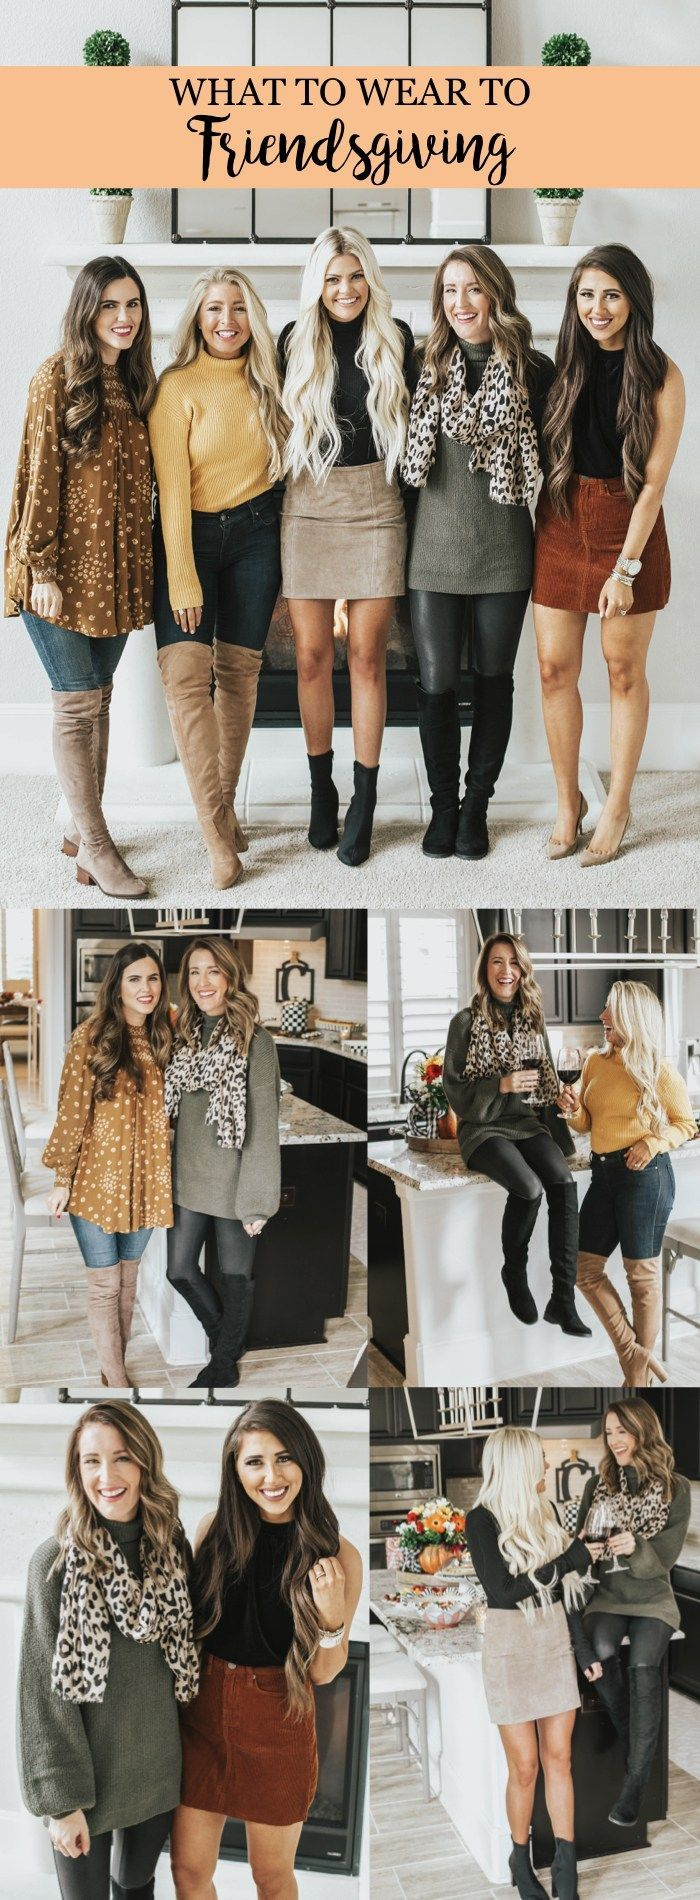 Friendsgiving: What to Wear, Tablescape Decor & Hostess Gifts | It's All Chic to Me | Houston Fashion Blogger | Style Blog